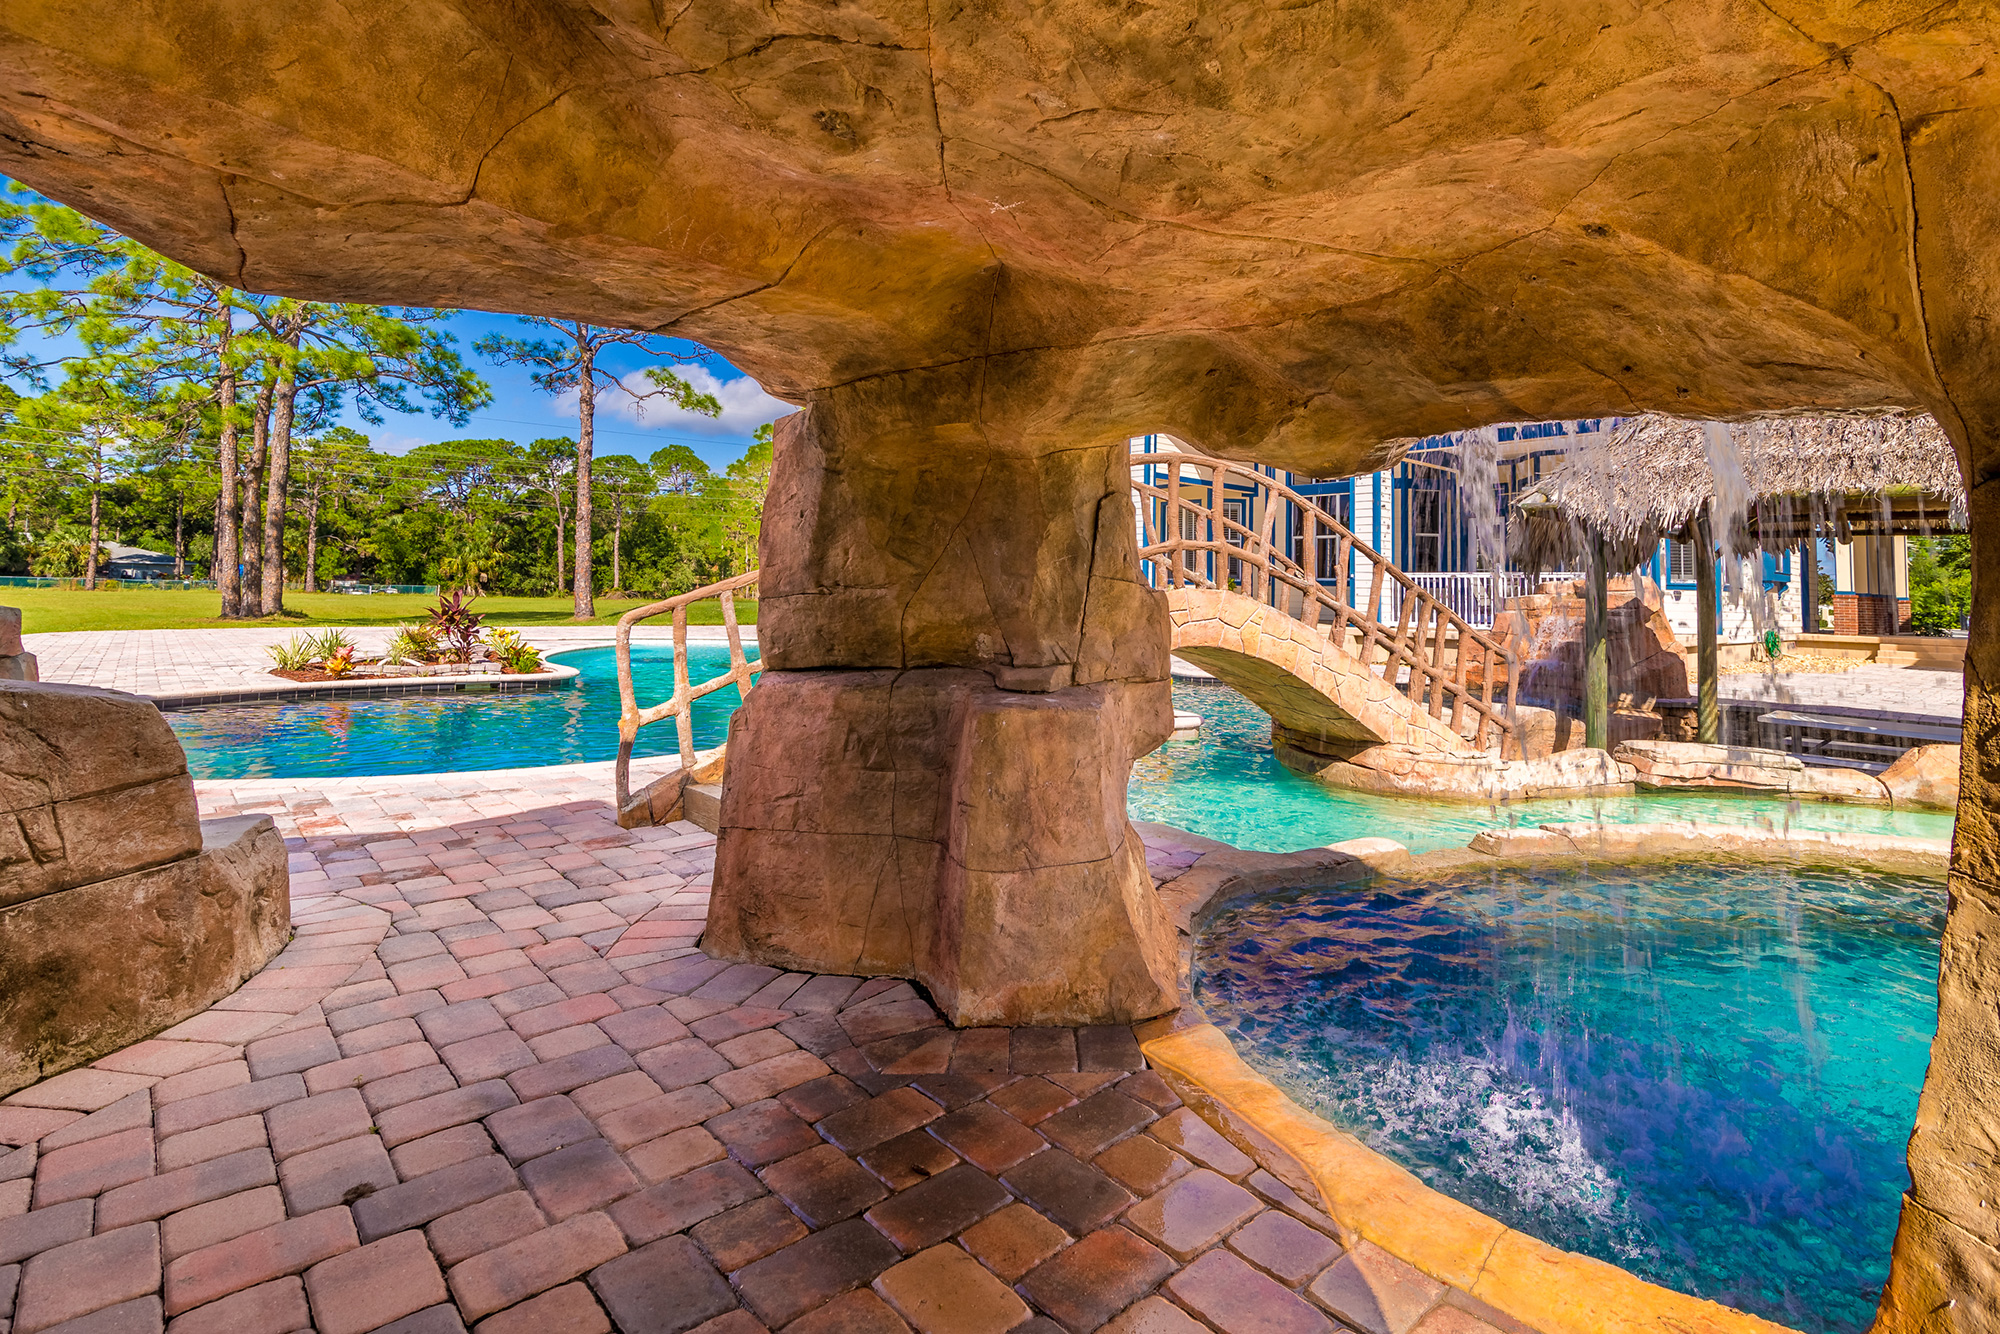 Disney Lovers' Florida House with Two Mickey Mouse–Shaped Pools Hits the Market for $850K disney-house-pool-cave